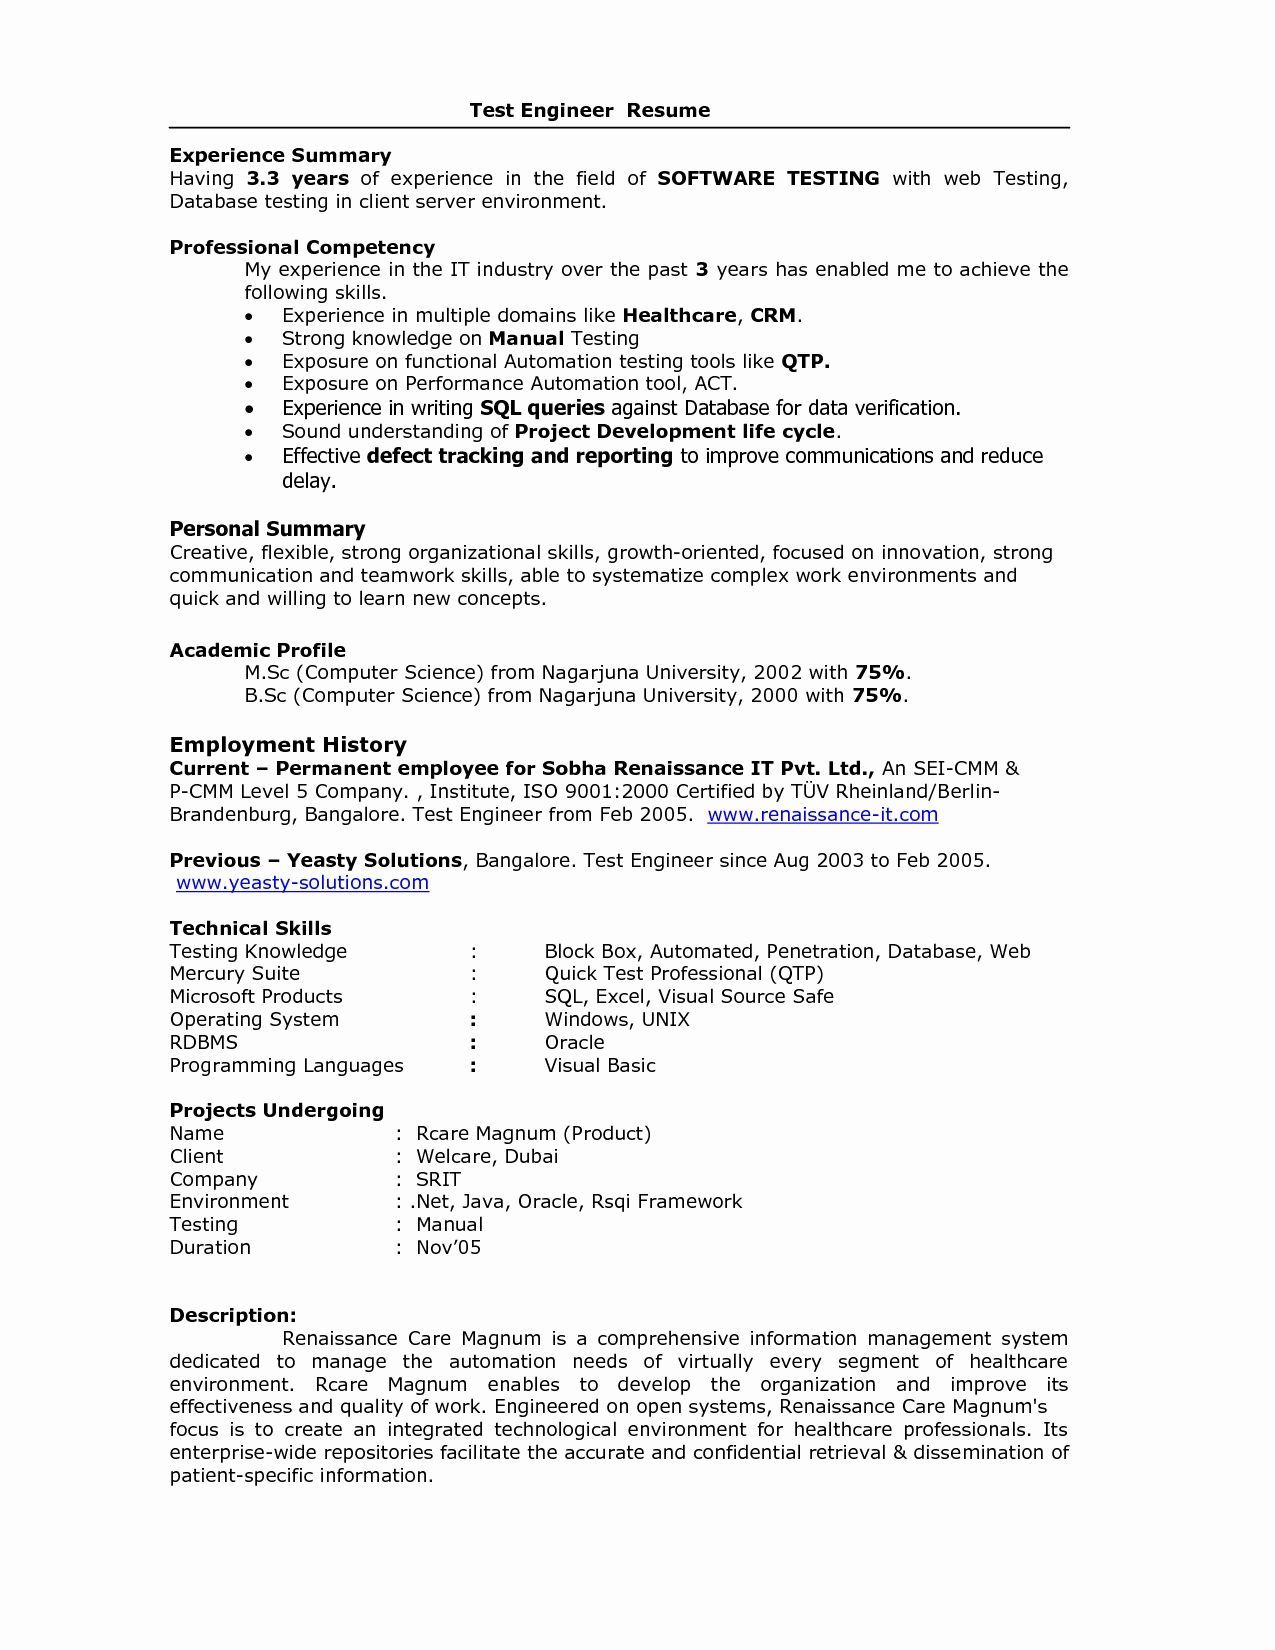 for 5 years experience in testing 3 resume format sample resume